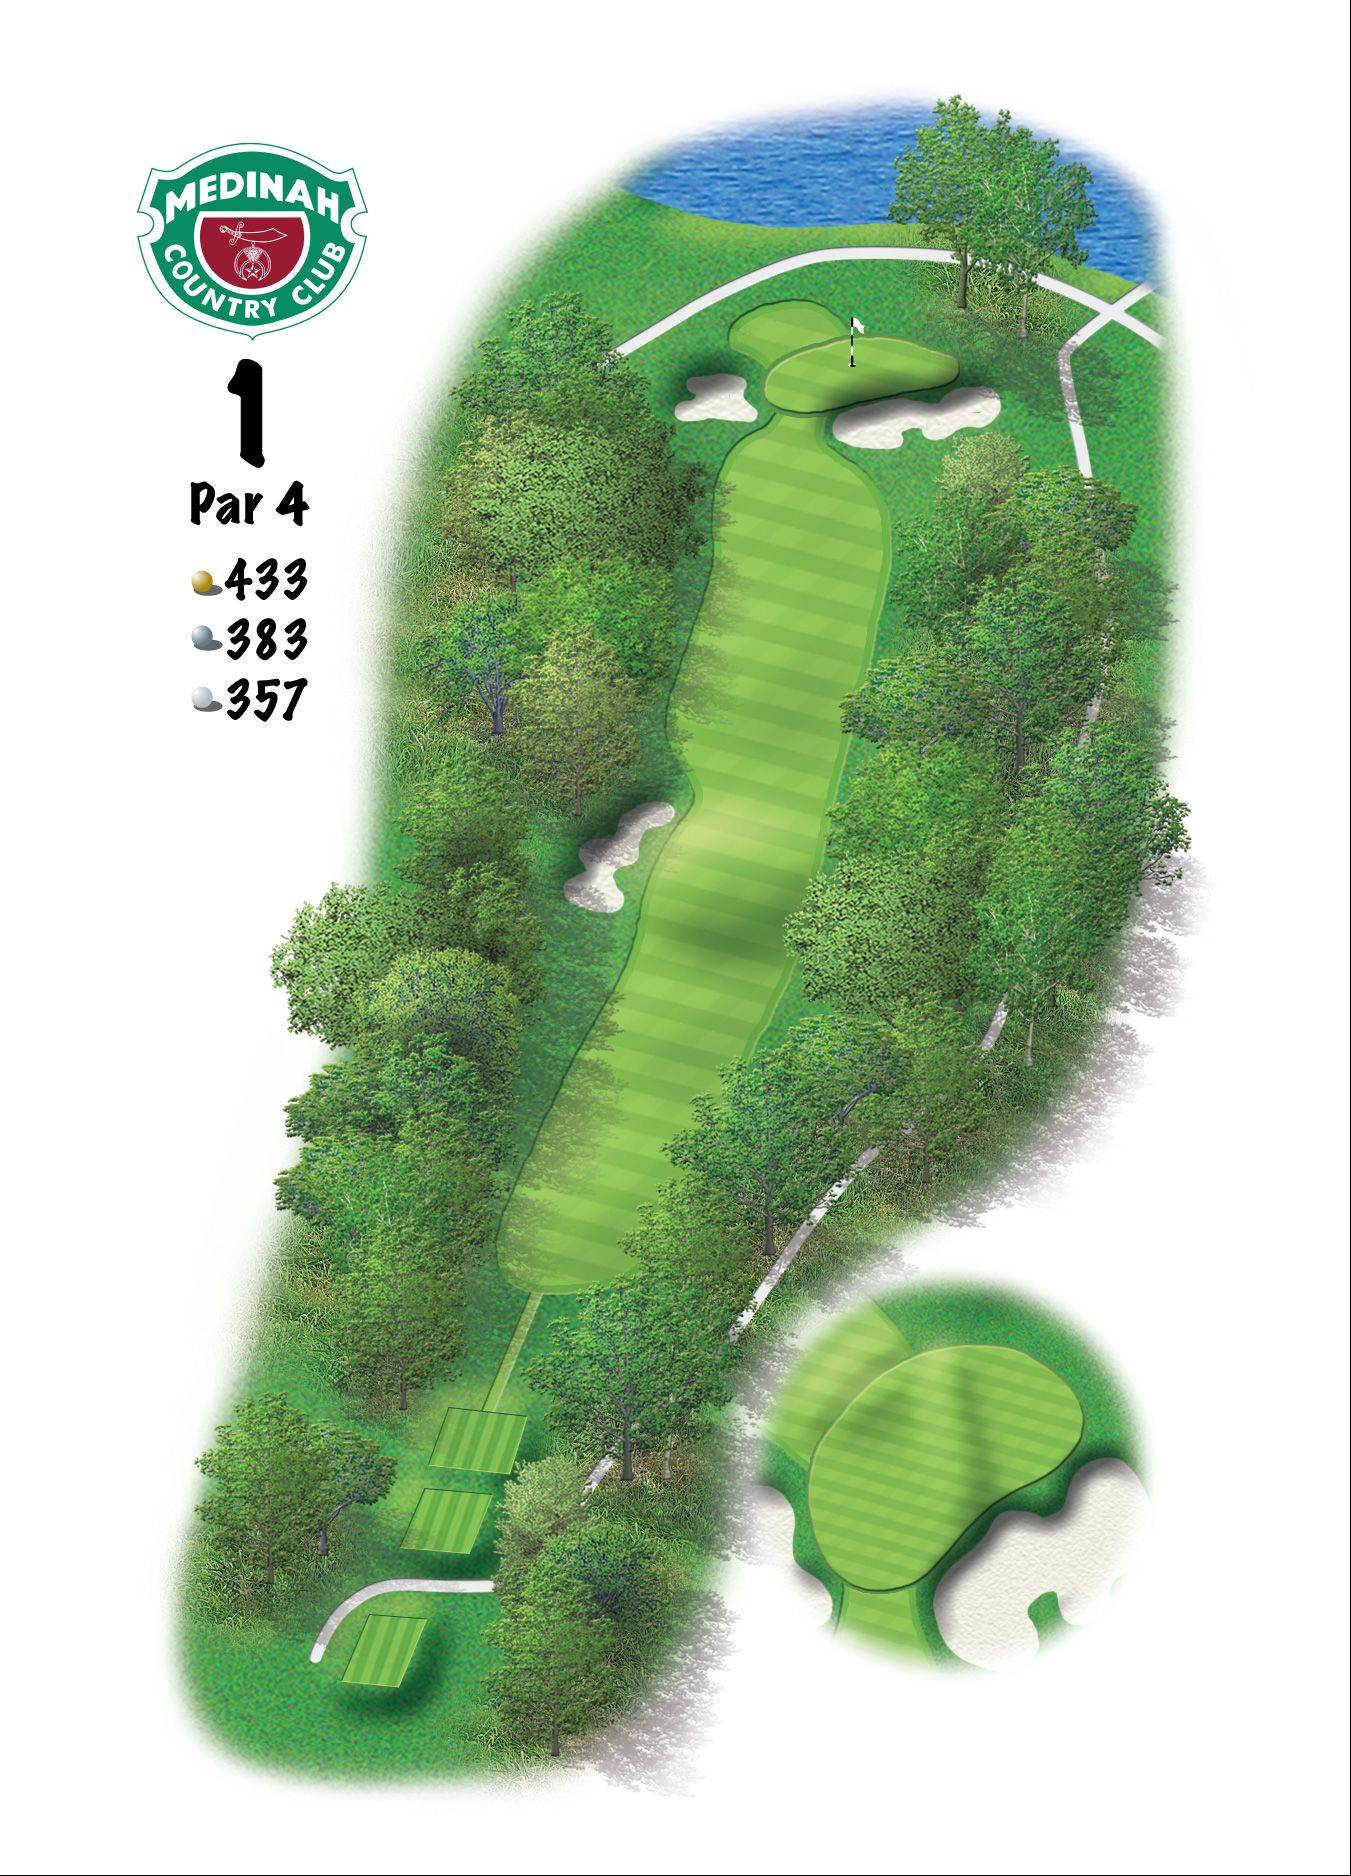 Hole 1 of the Ryder Cup course at Medinah. 433 yards/387 meters, Par-4, The green has a slight pitch, from back-to-front. The toughest hole placement is back-right, with only 18 feet of green behind the front-right bunker. It's an easy opening hole, compared to the rest of the course, and can give a player a false sense of security.